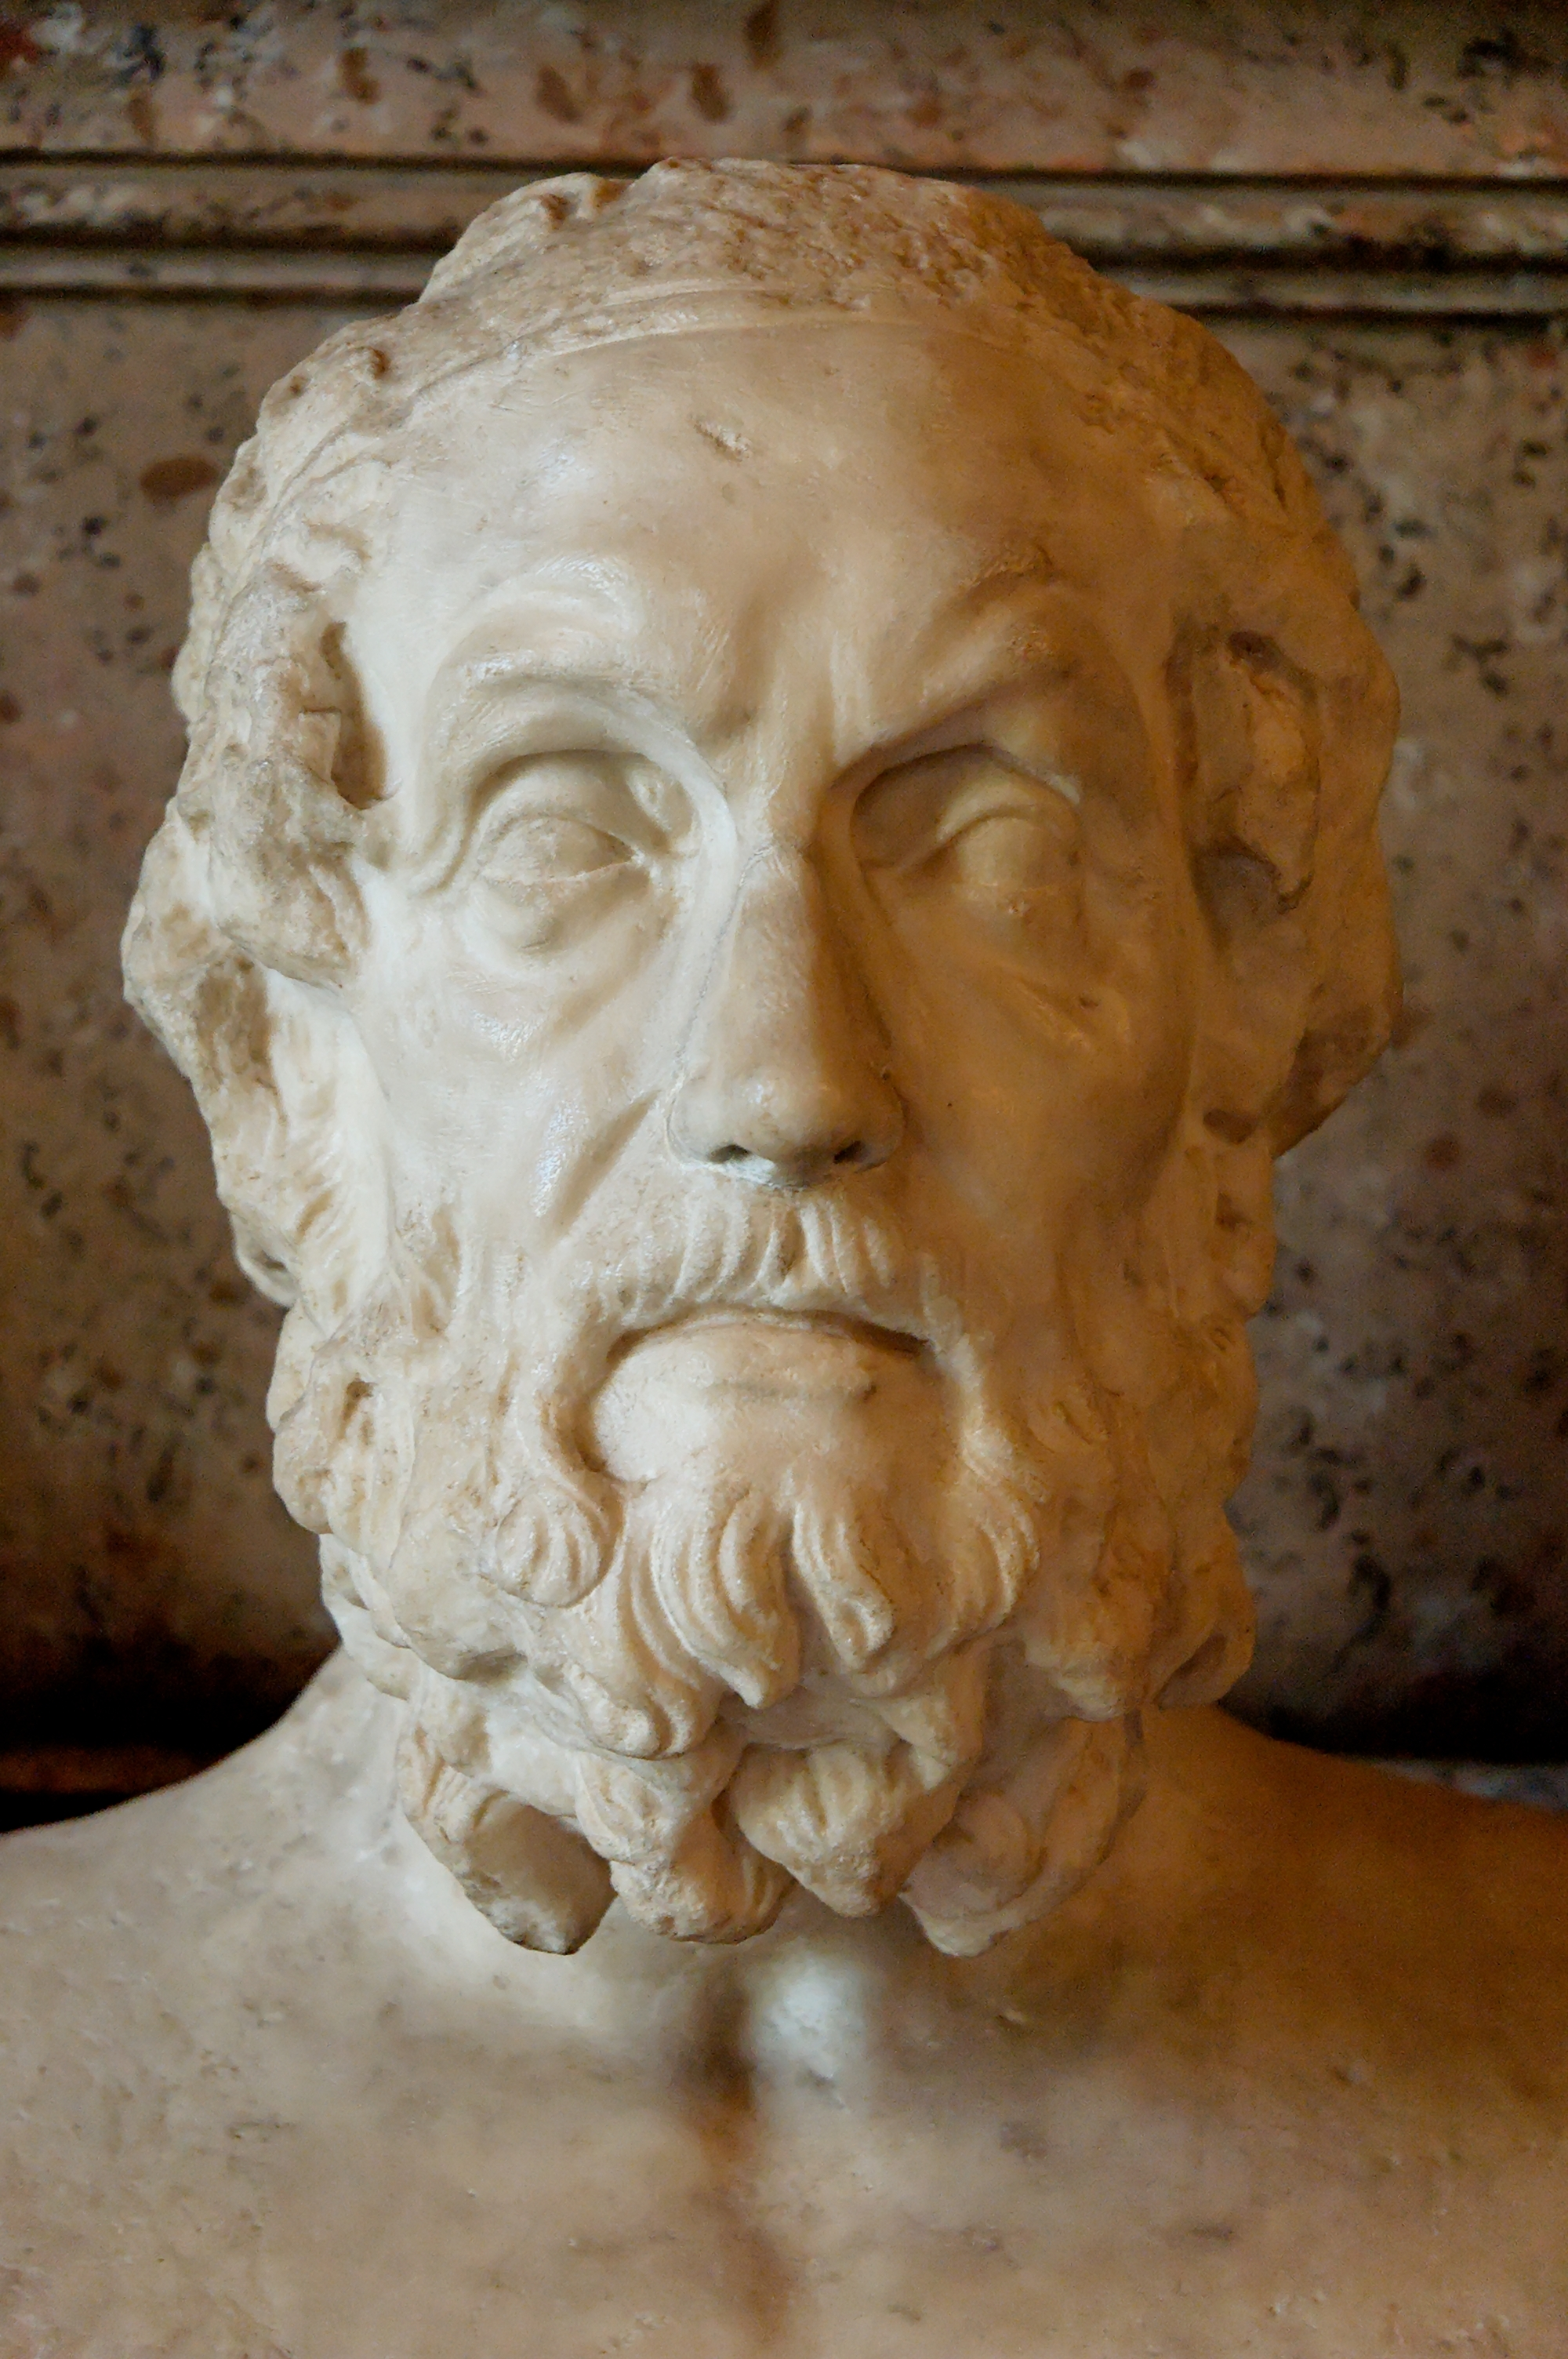 https://i1.wp.com/upload.wikimedia.org/wikipedia/commons/3/34/Homer_Musei_Capitolini_MC559.jpg